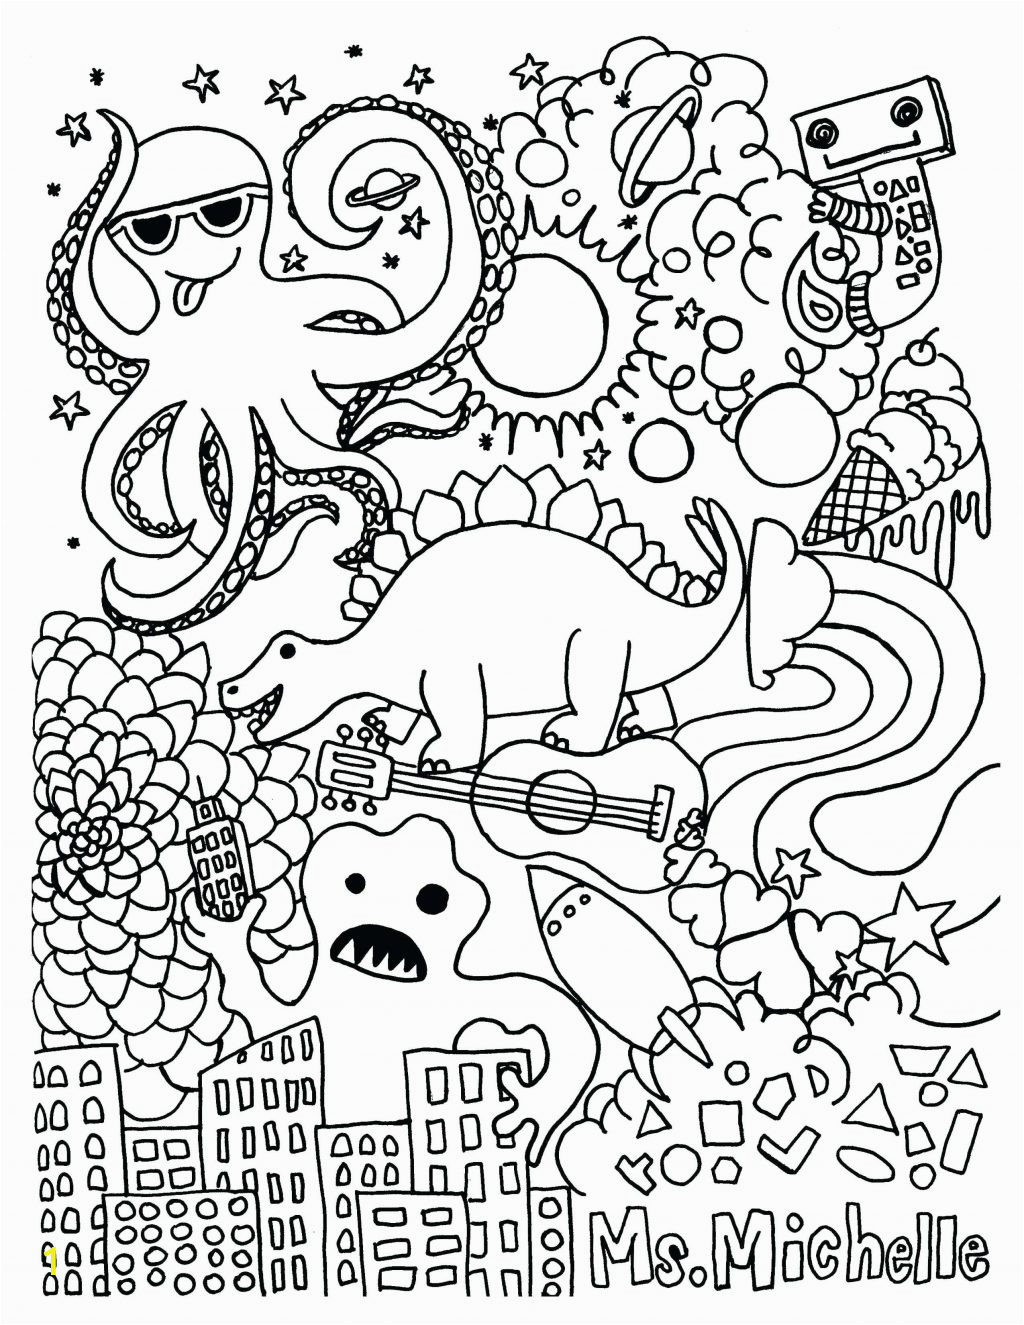 paw patrol printable coloring pages animal mandala transformers book adult tiger of horses for adults gilmore girls fun easter dragon roald dahl colouring fall day the batman and robin 1024x1325